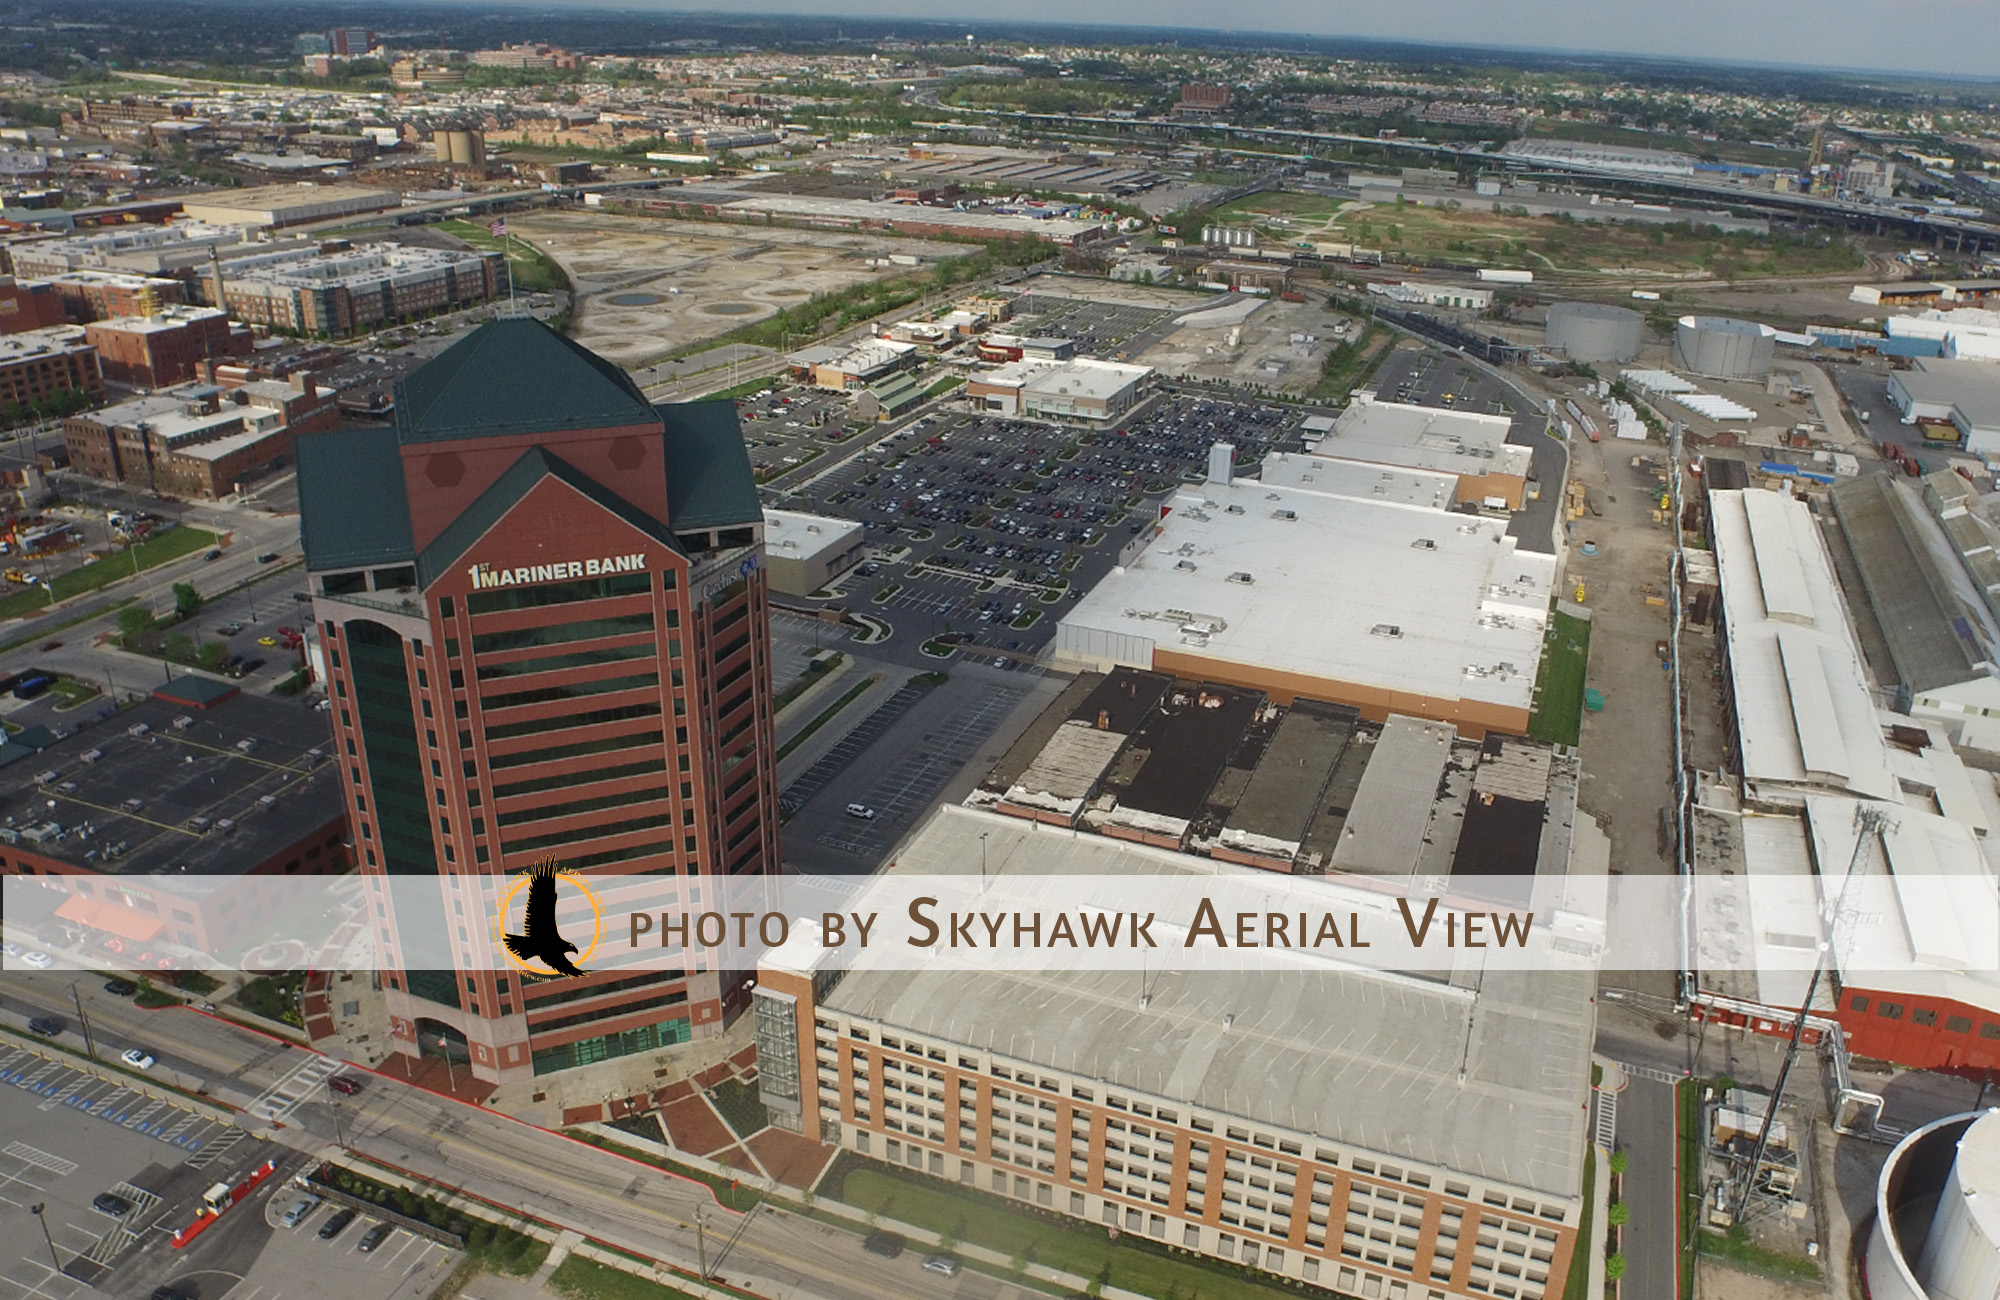 Commercial properties photography by Skyhawk Aerial View